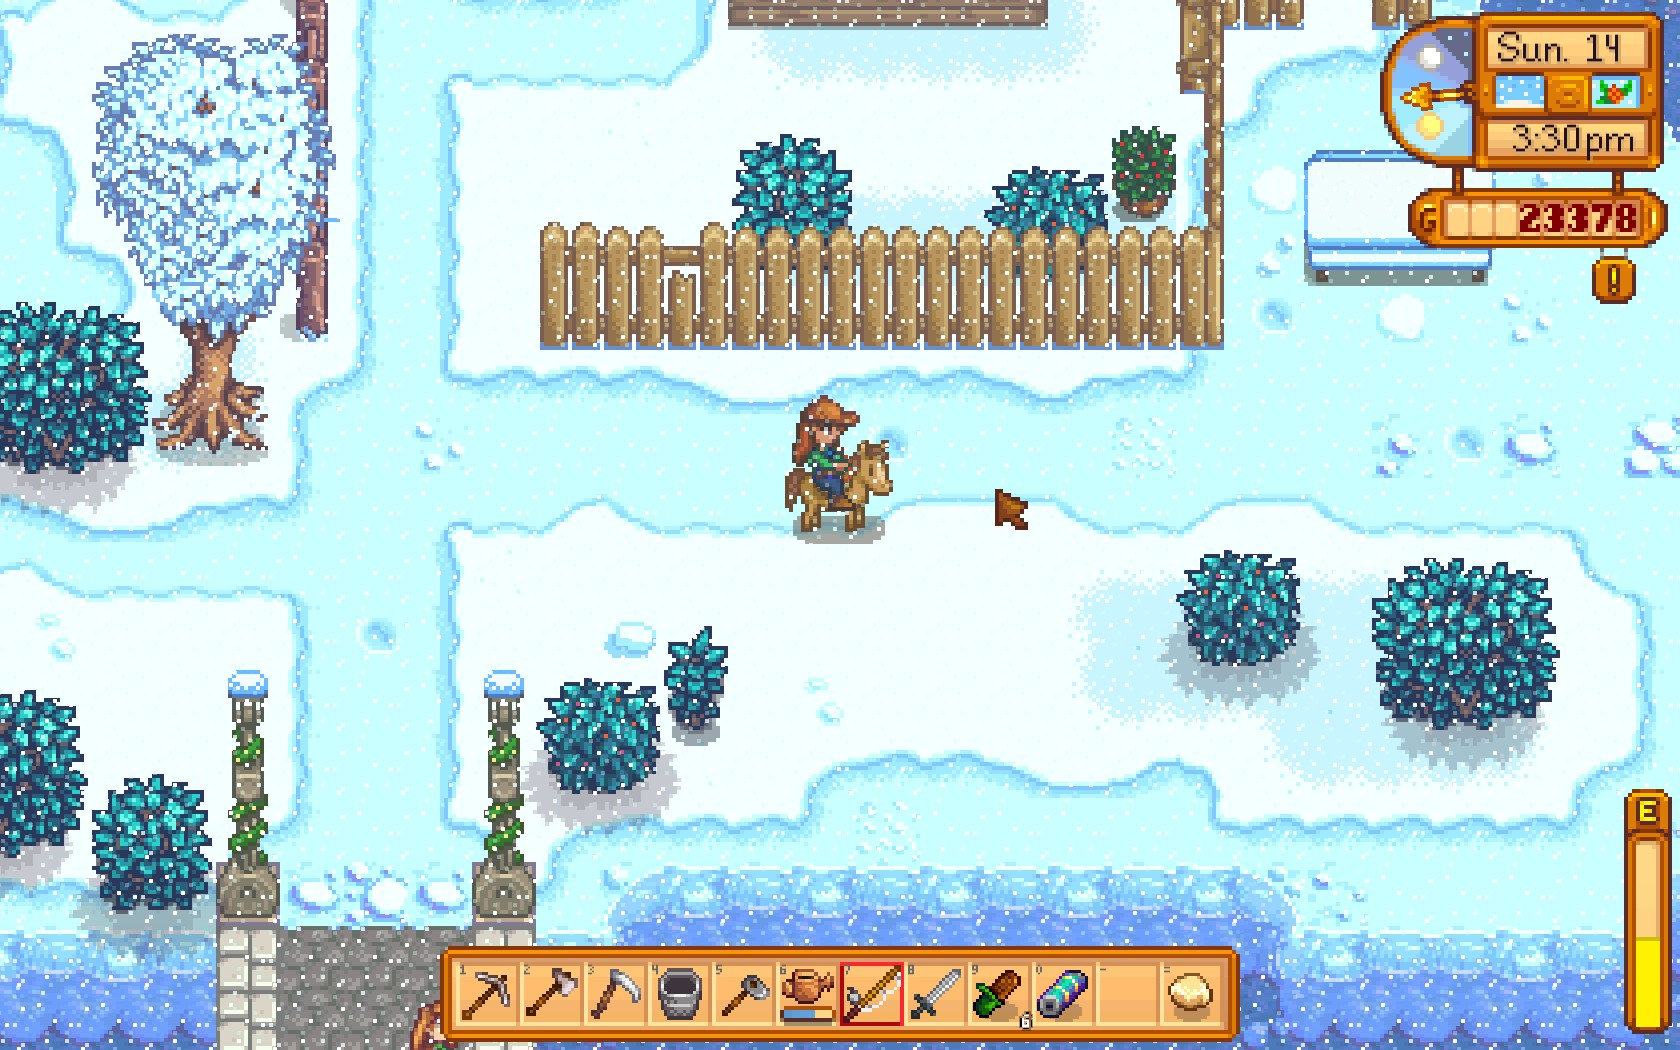 A screenshot of my player character riding a horse in Stardew Valley